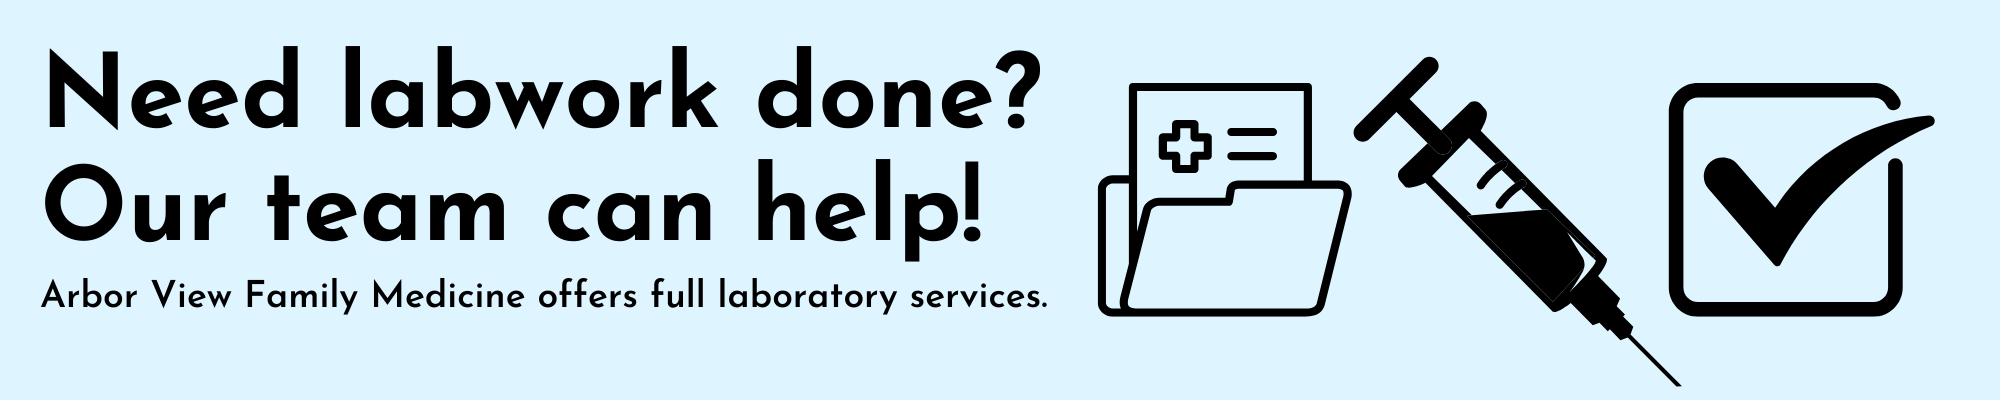 light blue background with text that says: Need lab work done? Our team can help. Arbor View Family Medicine offers full laboratory services.